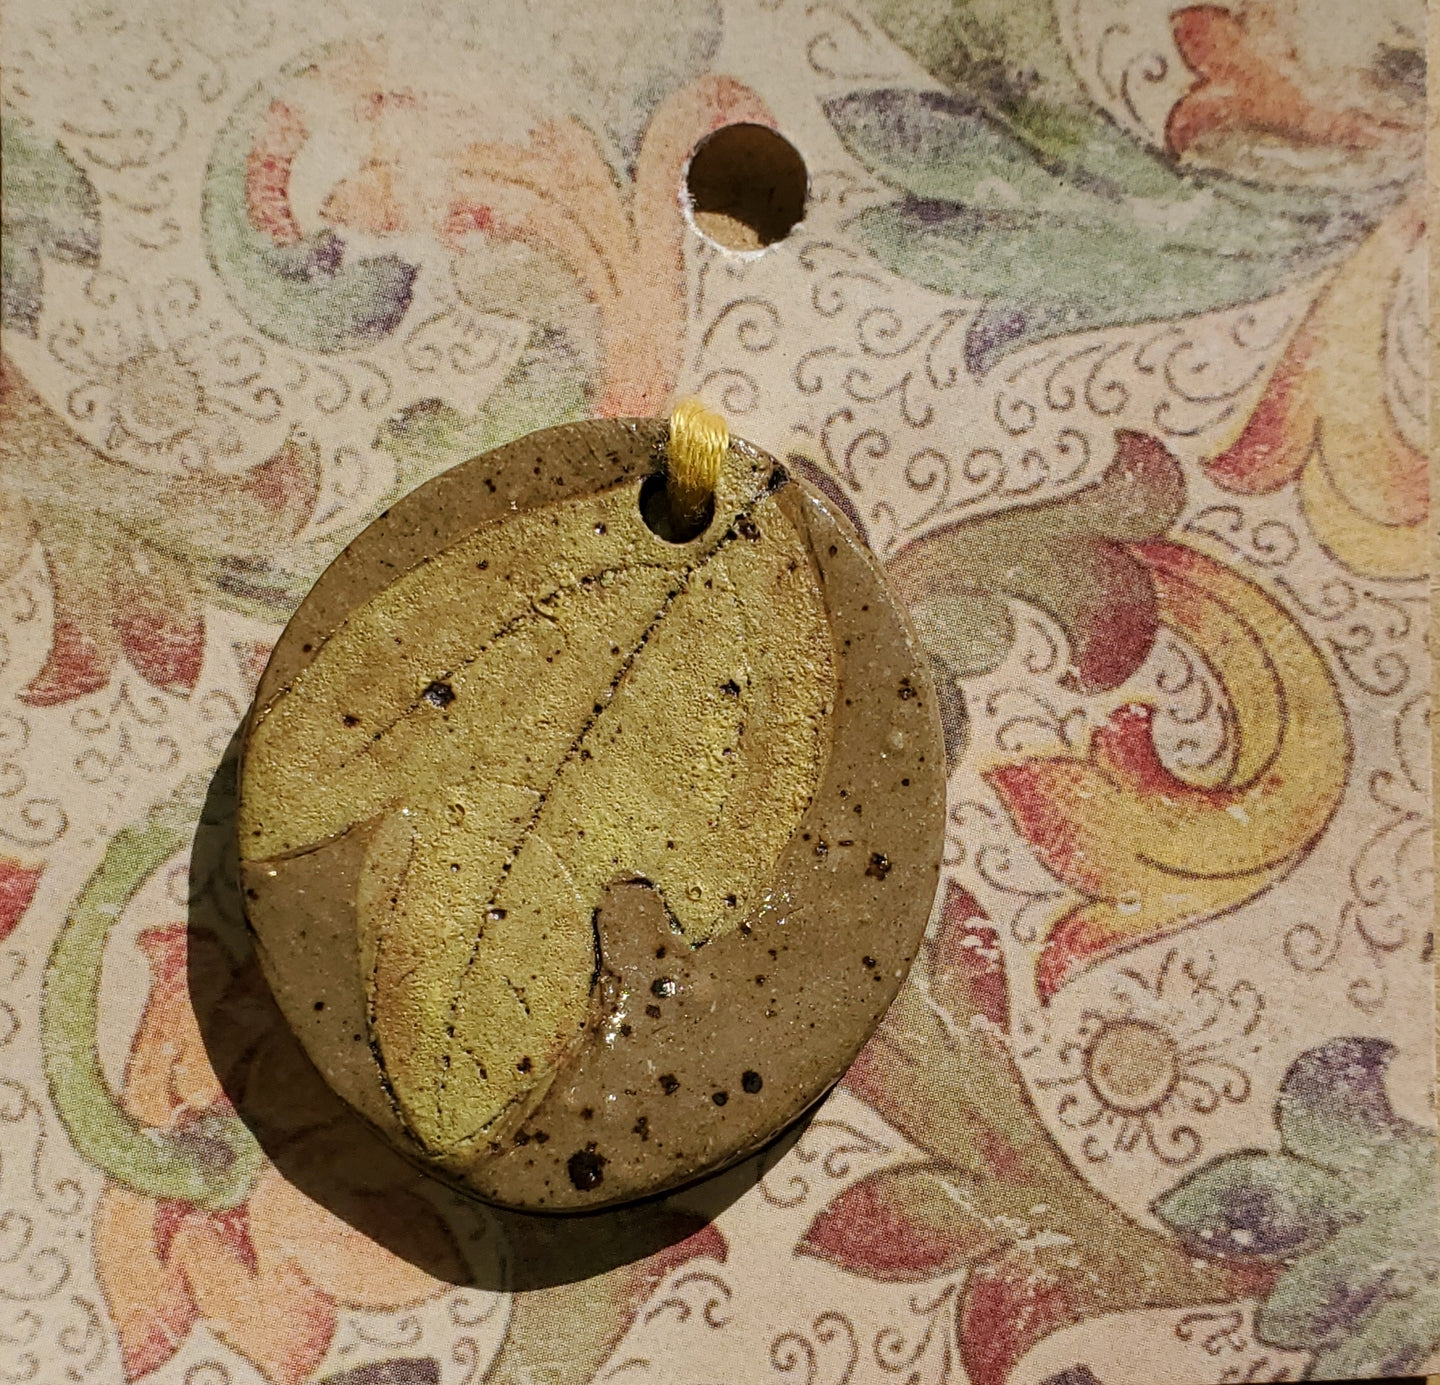 Leaf imprint clay pendant by Annette keese